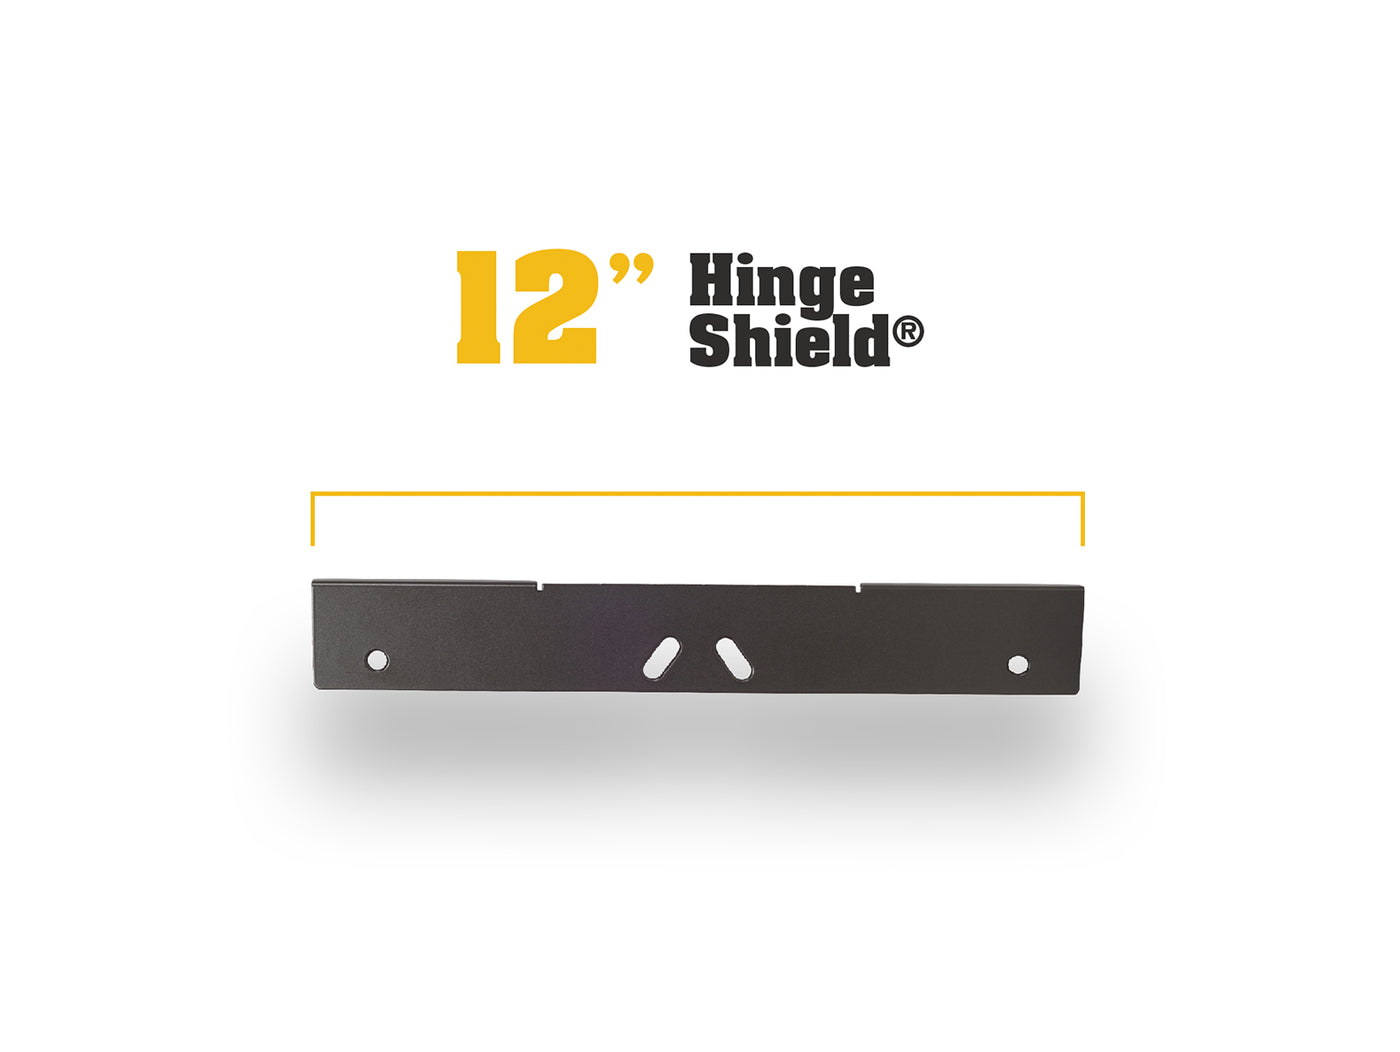 Door Hinge Reinforcement Door Hinge Shield Armor Concepts